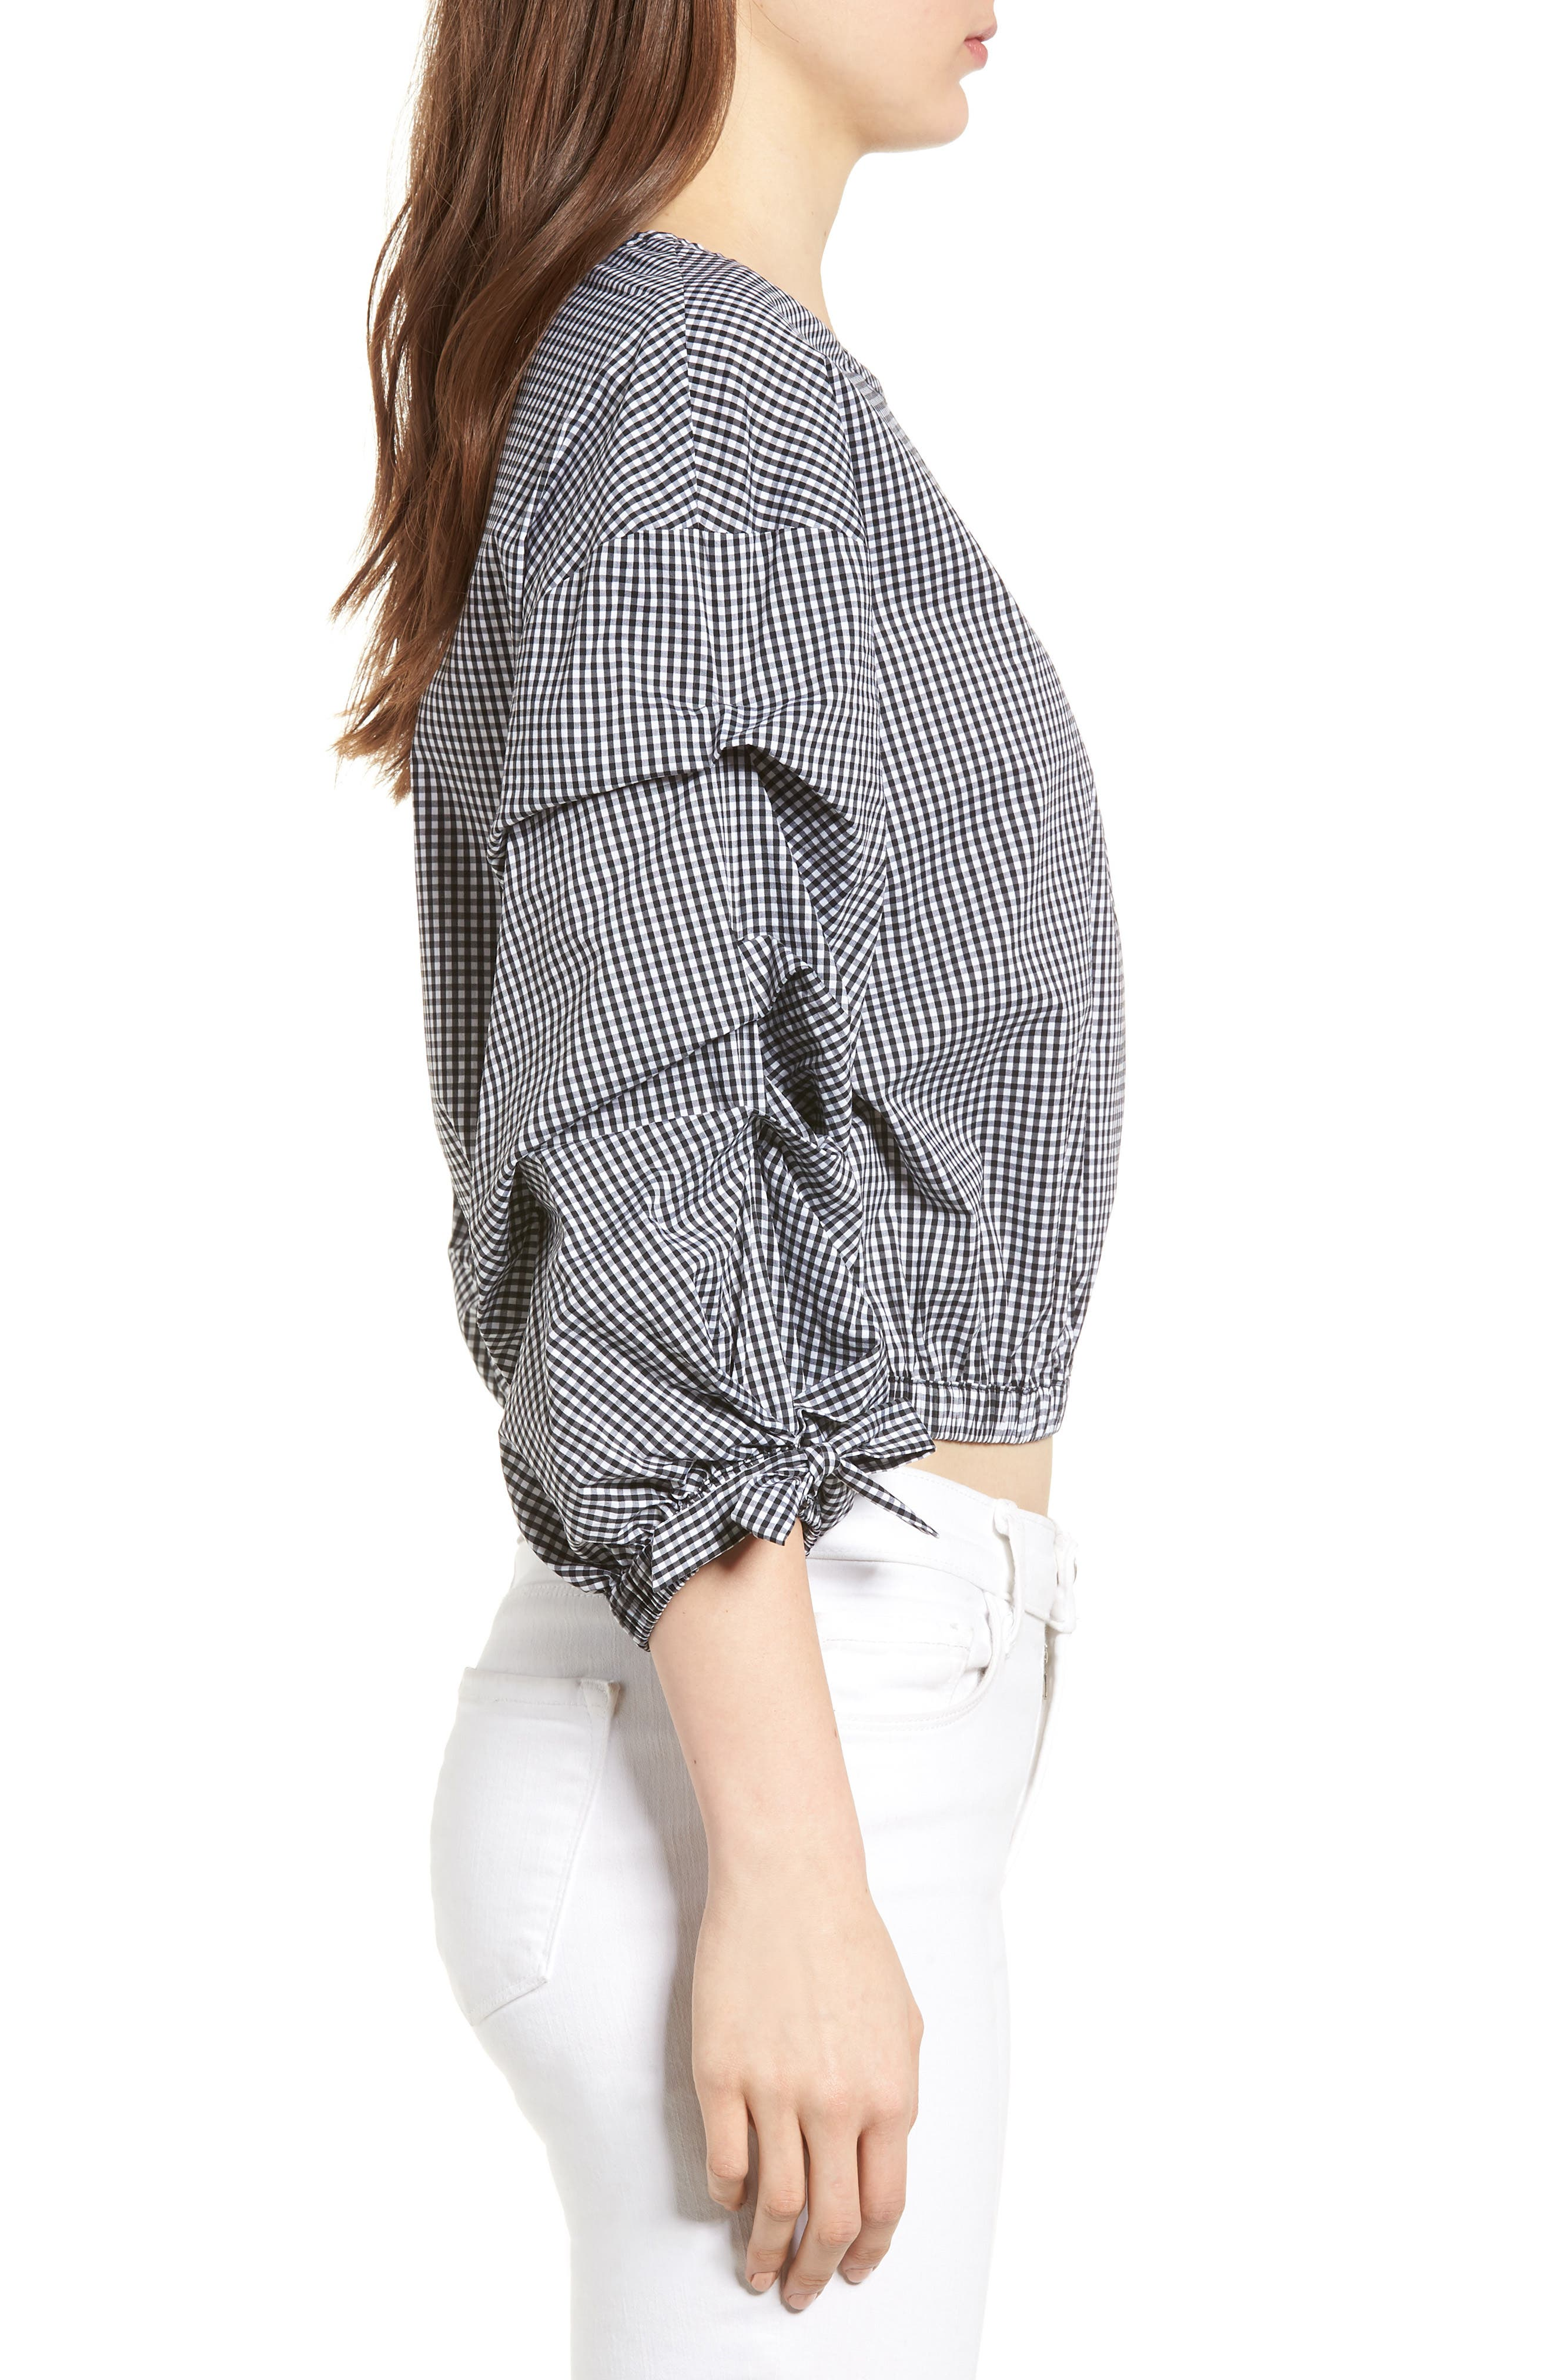 Bishop + Young Ruched Sleeve Blouse,                             Alternate thumbnail 3, color,                             Gingham